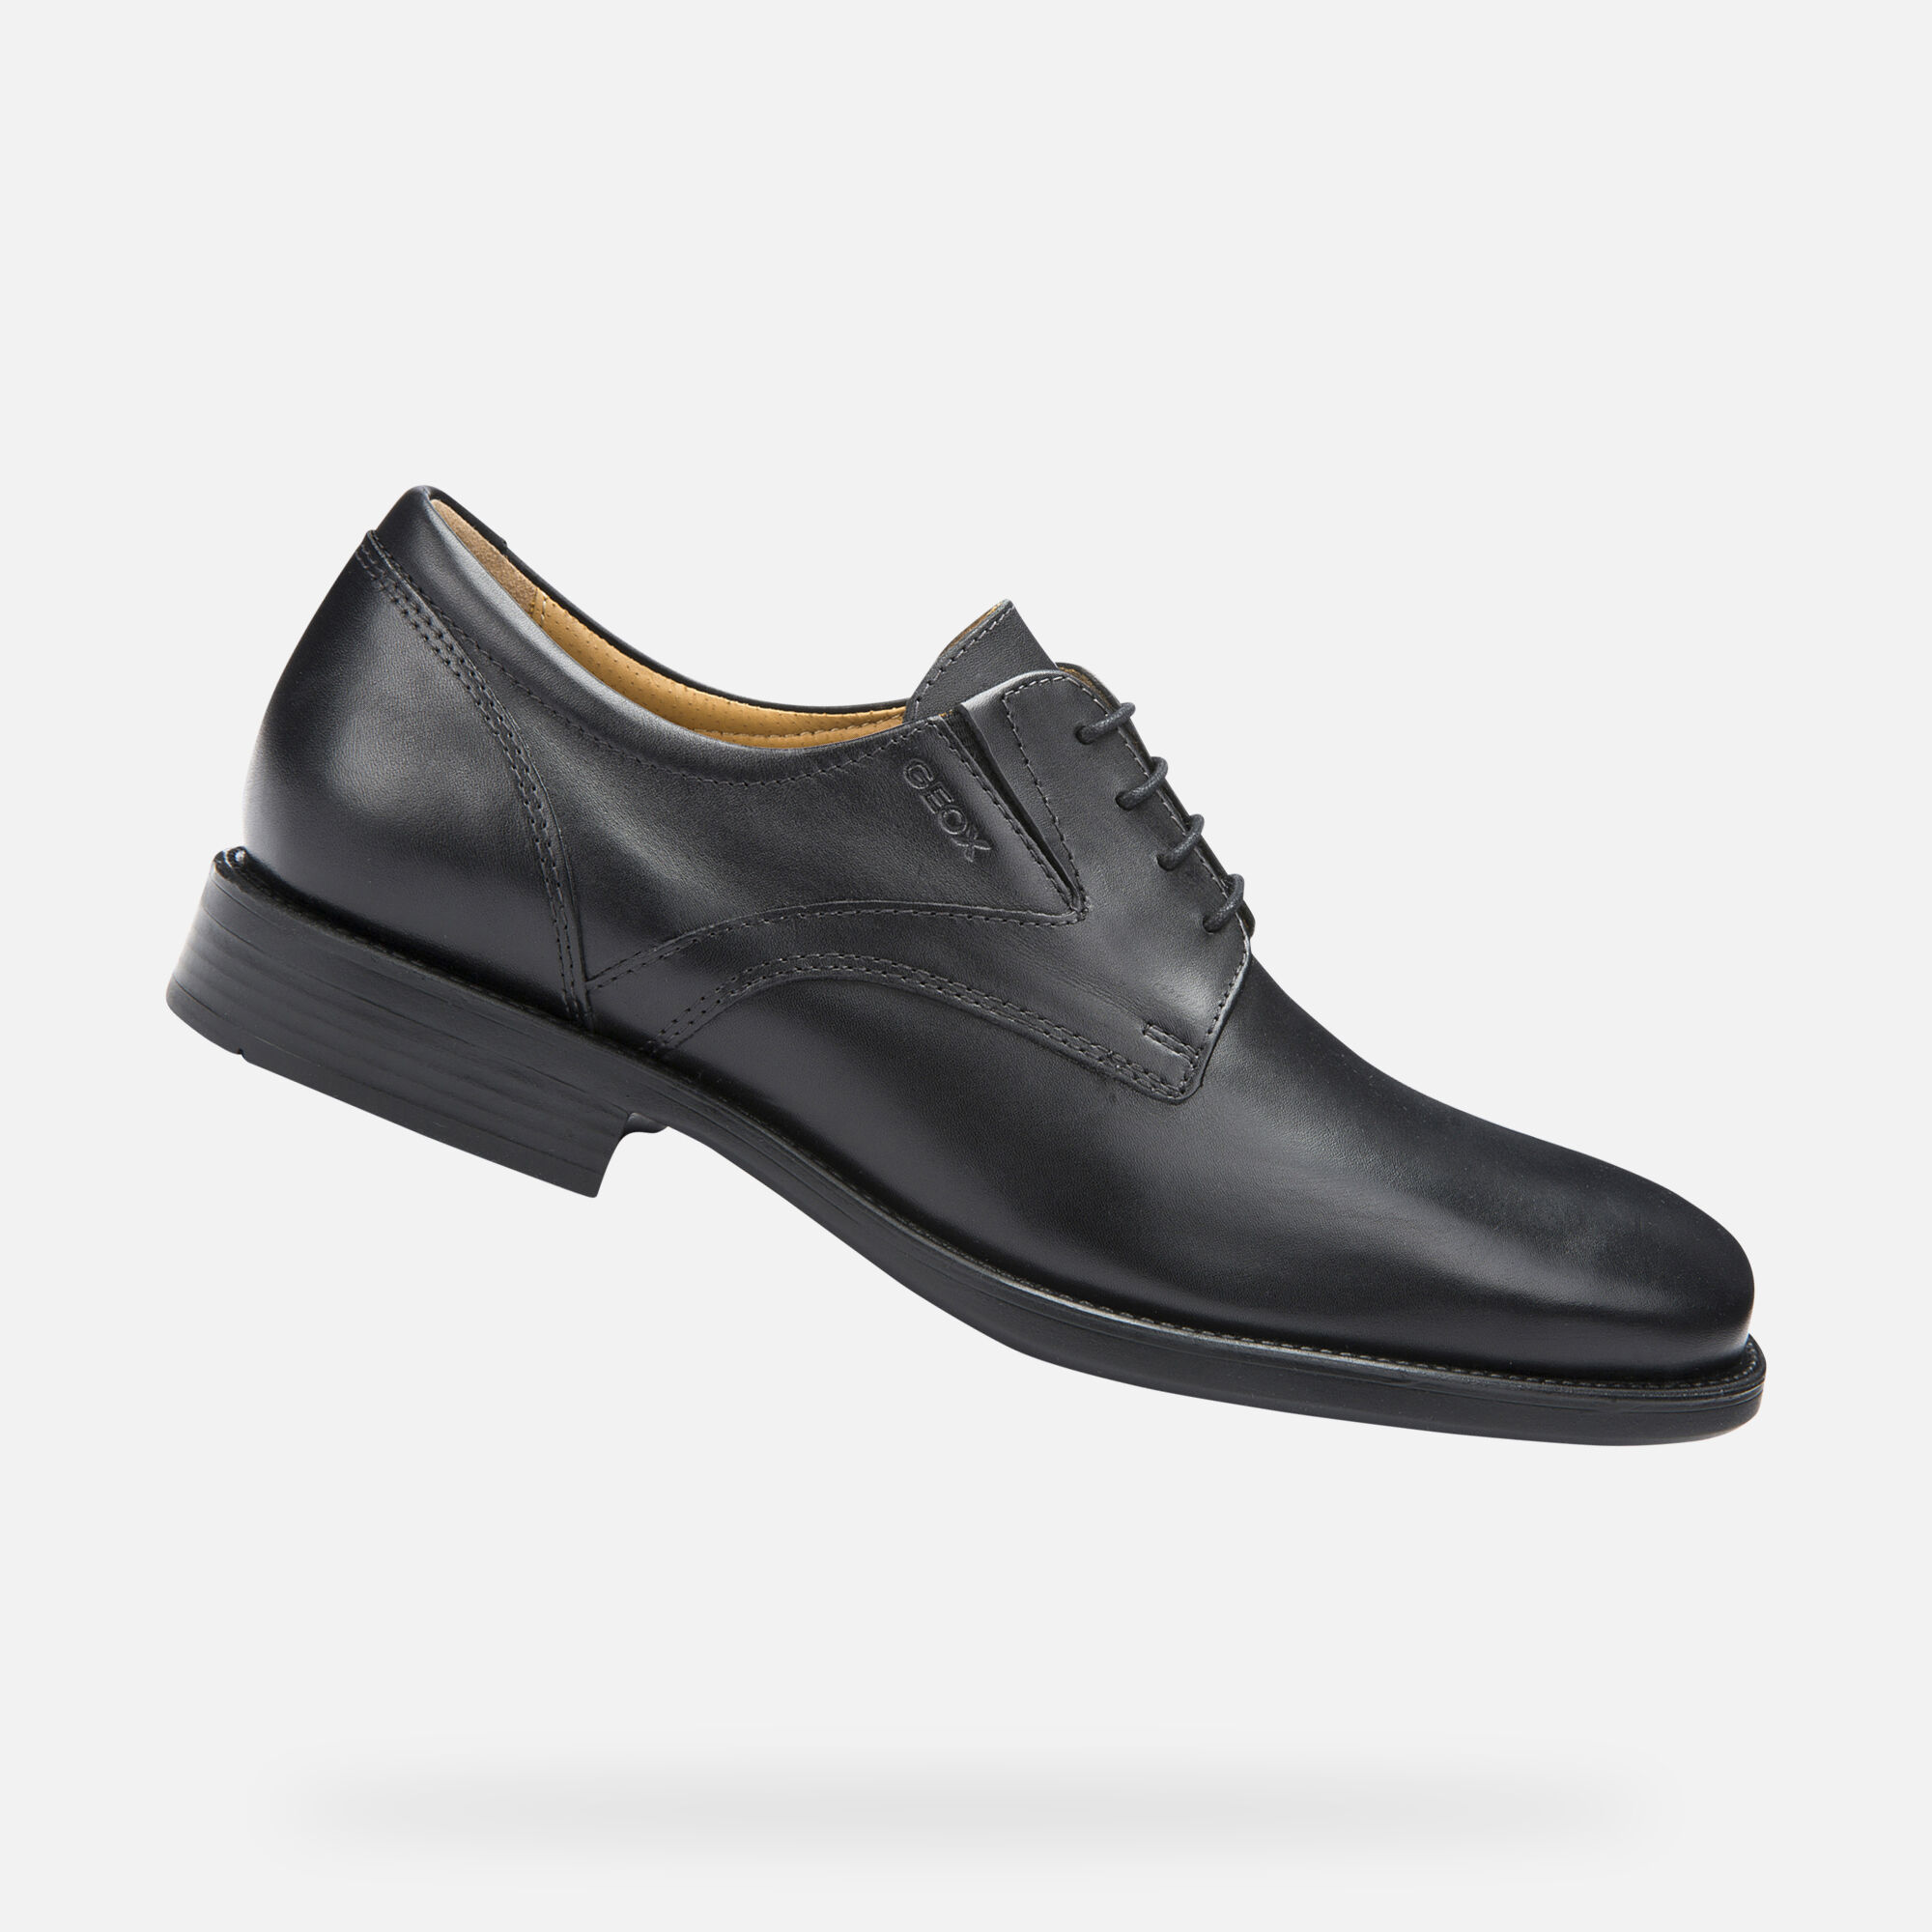 chaussures pieds larges geox